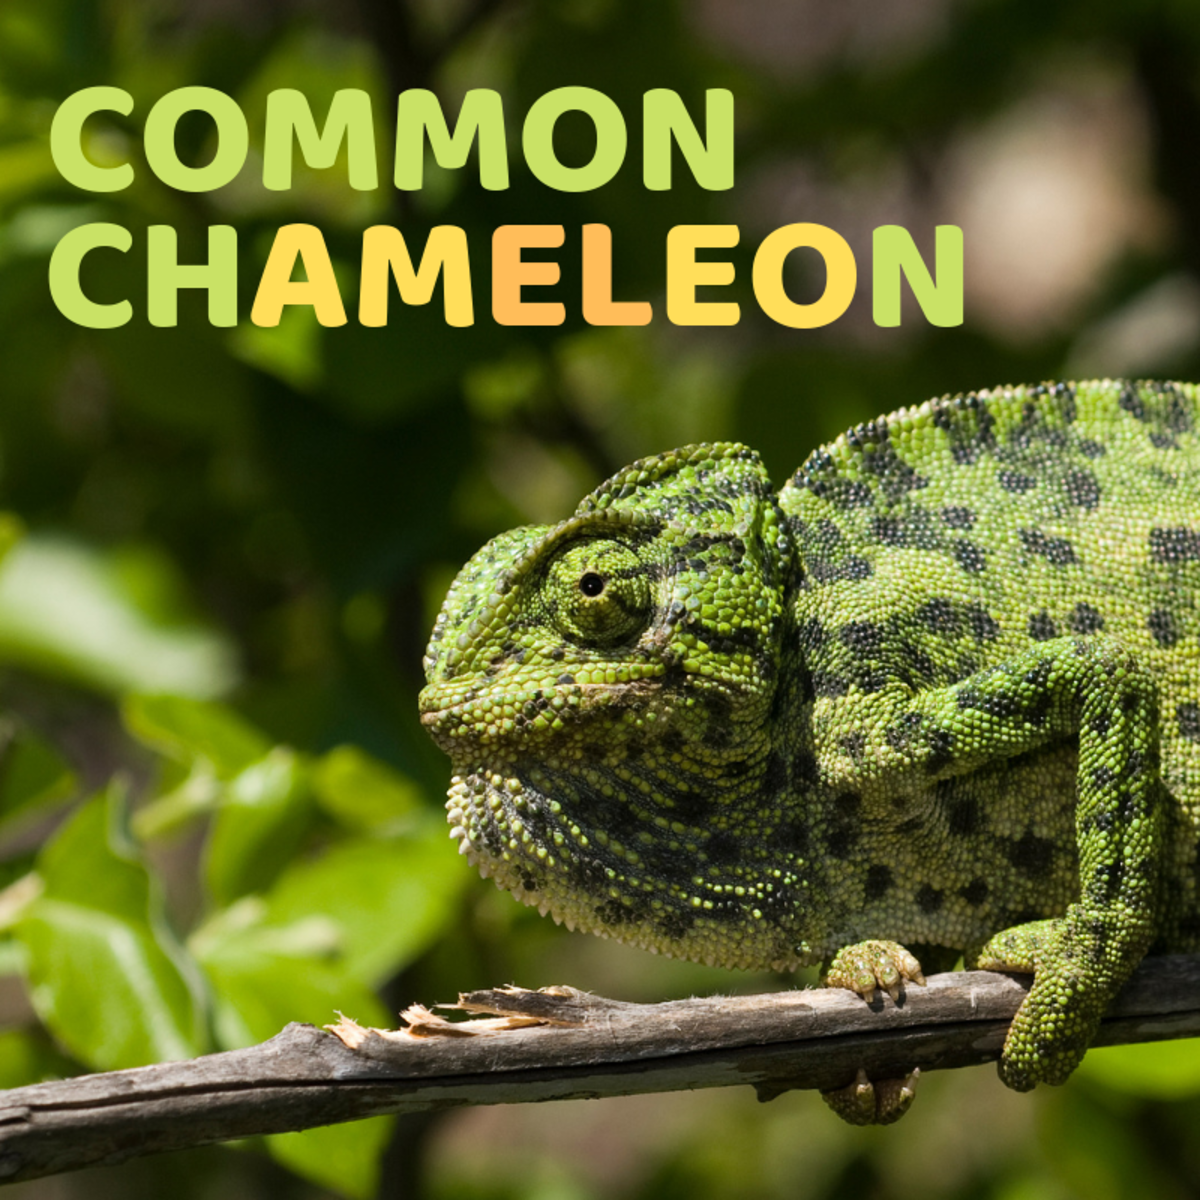 The Common Chameleon: The Only Chameleon Found in Europe